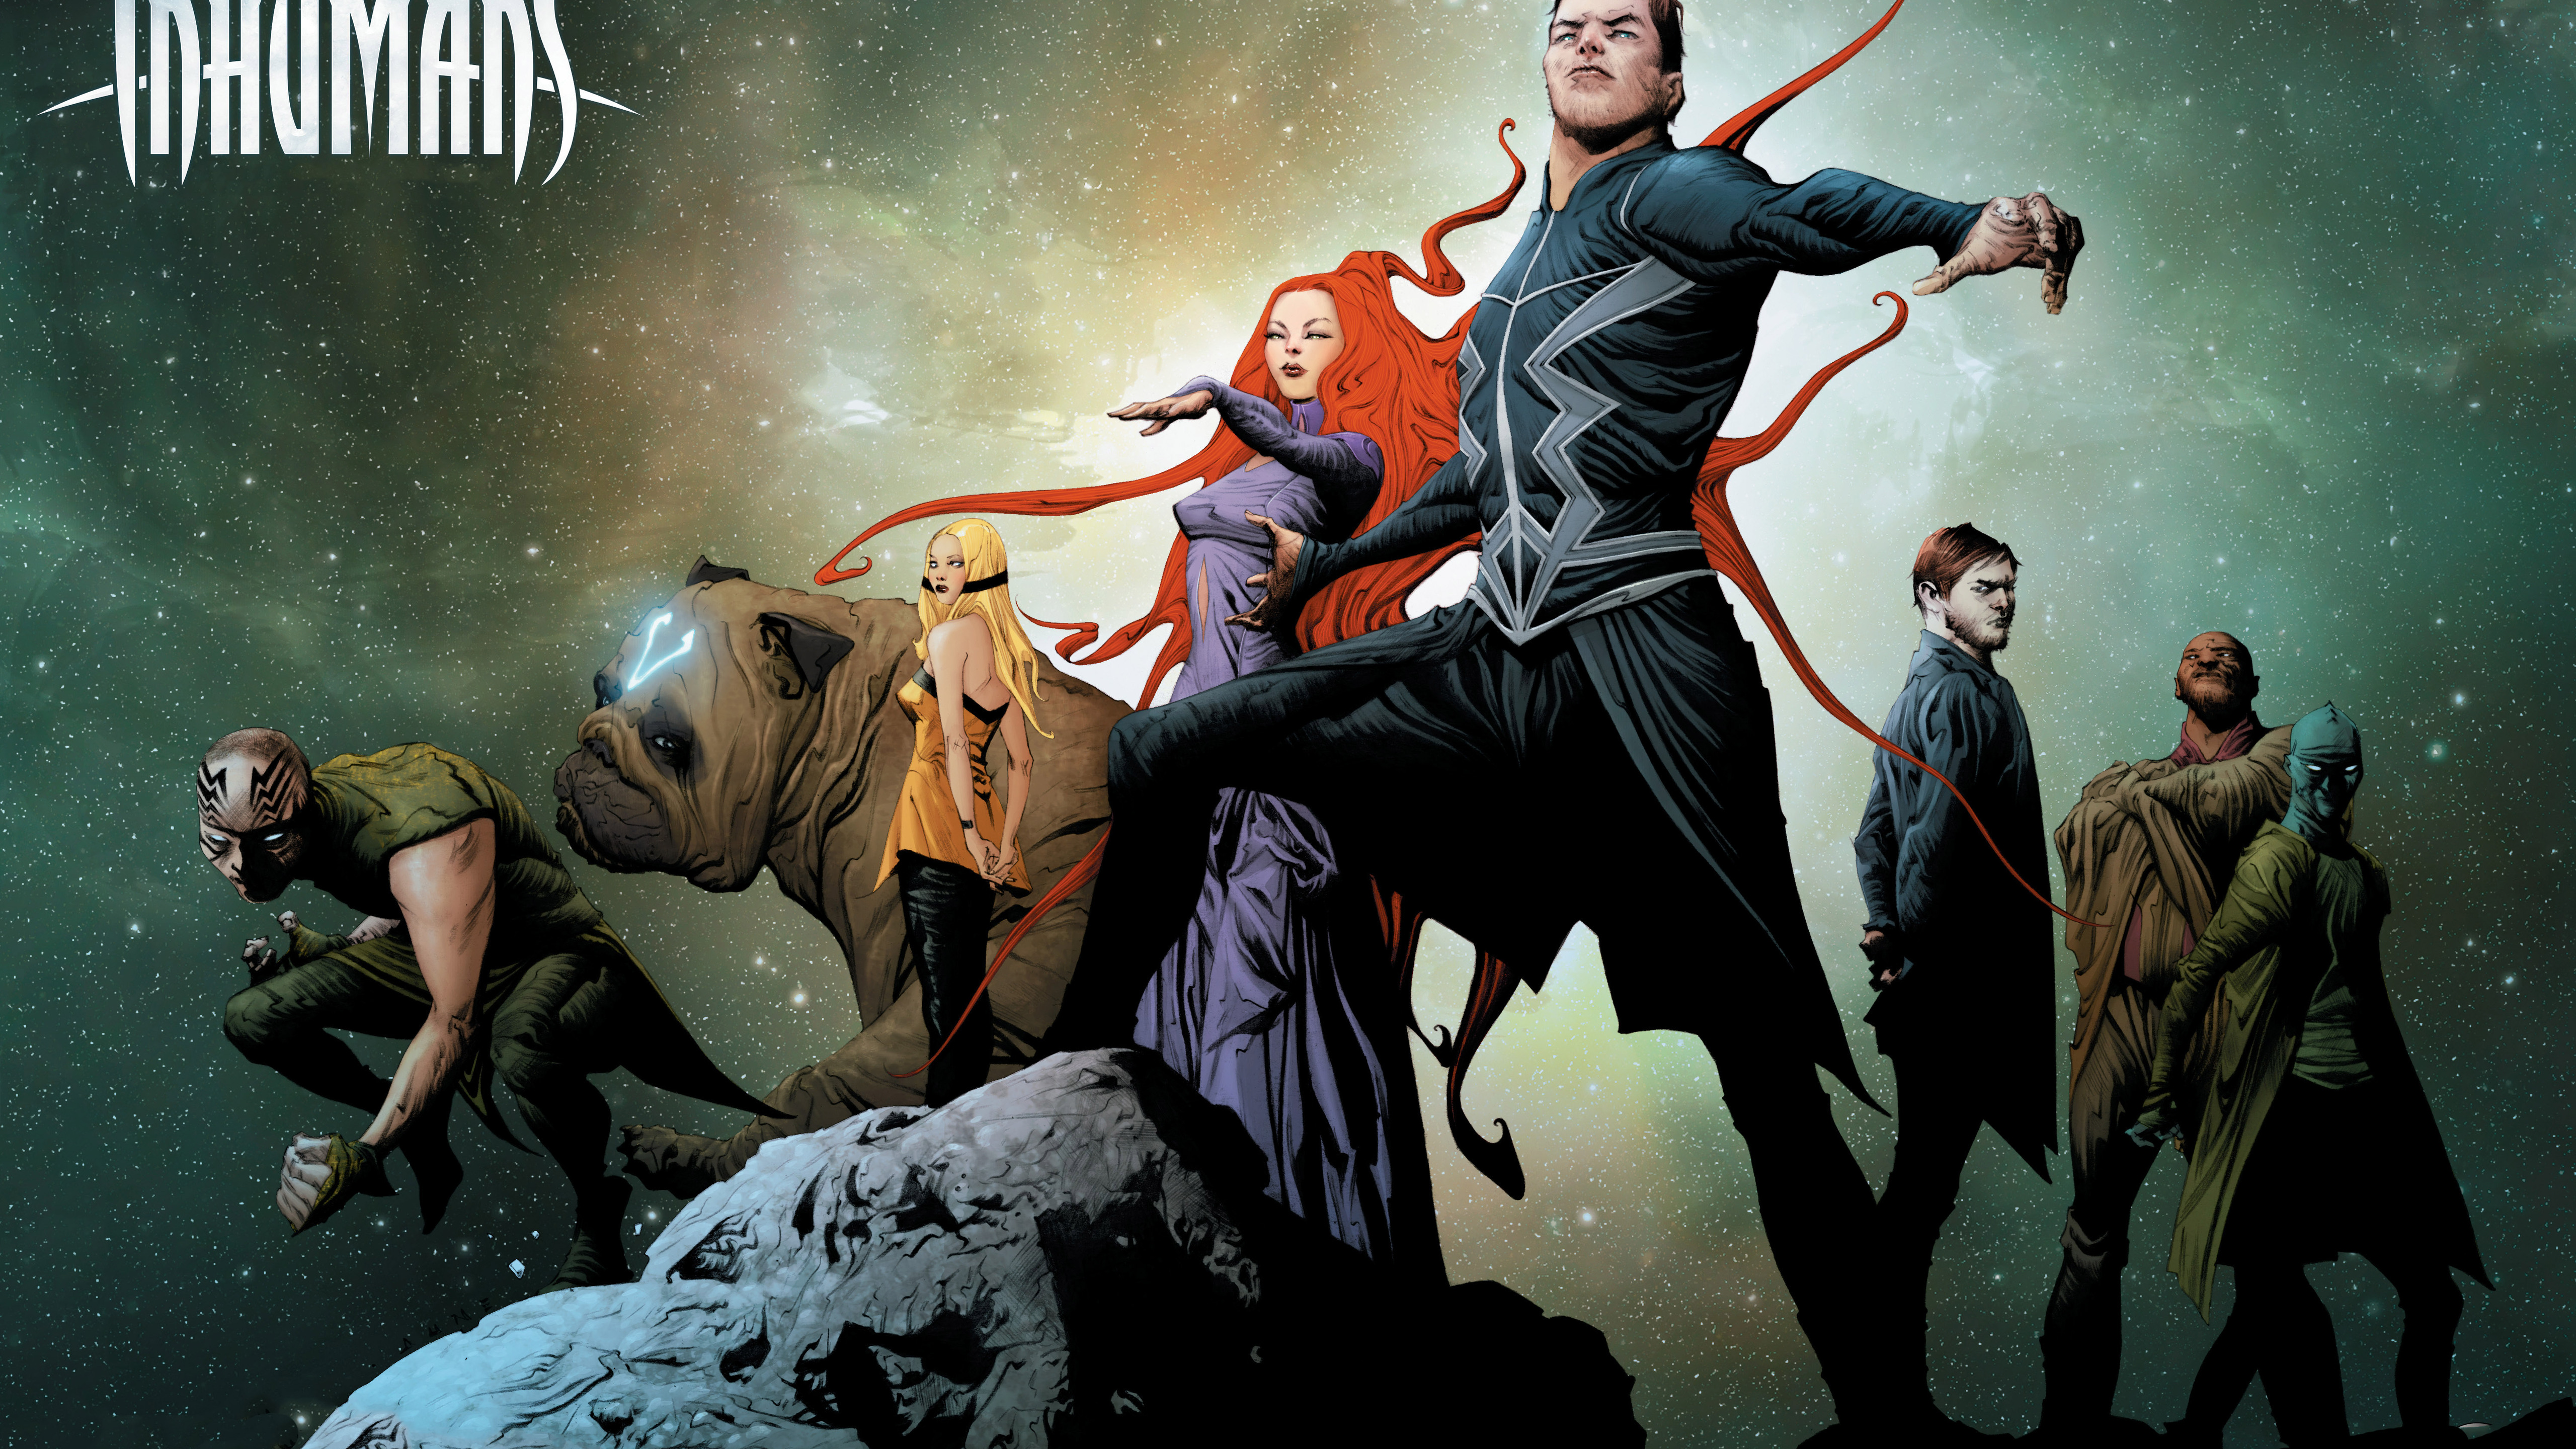 marvel-inhumans-artwork-poster-22.jpg